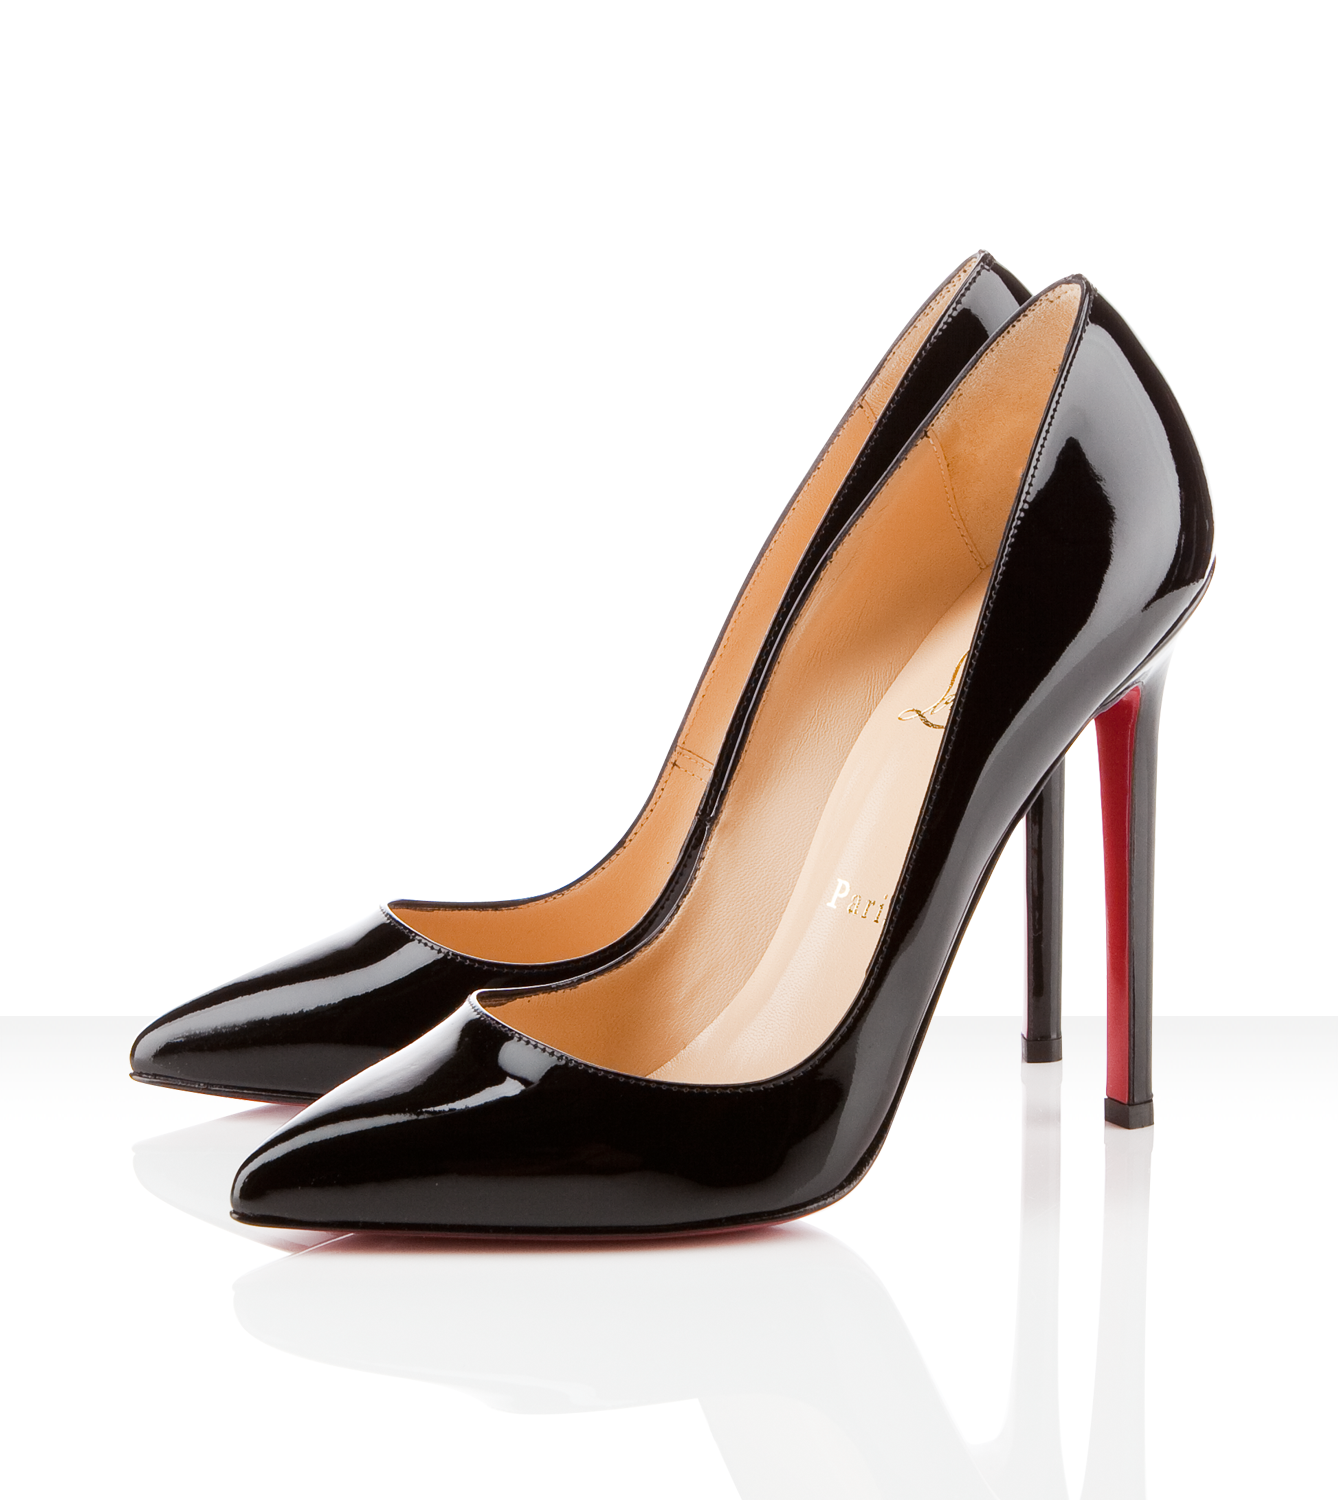 Christian-Louboutin-Pigalle